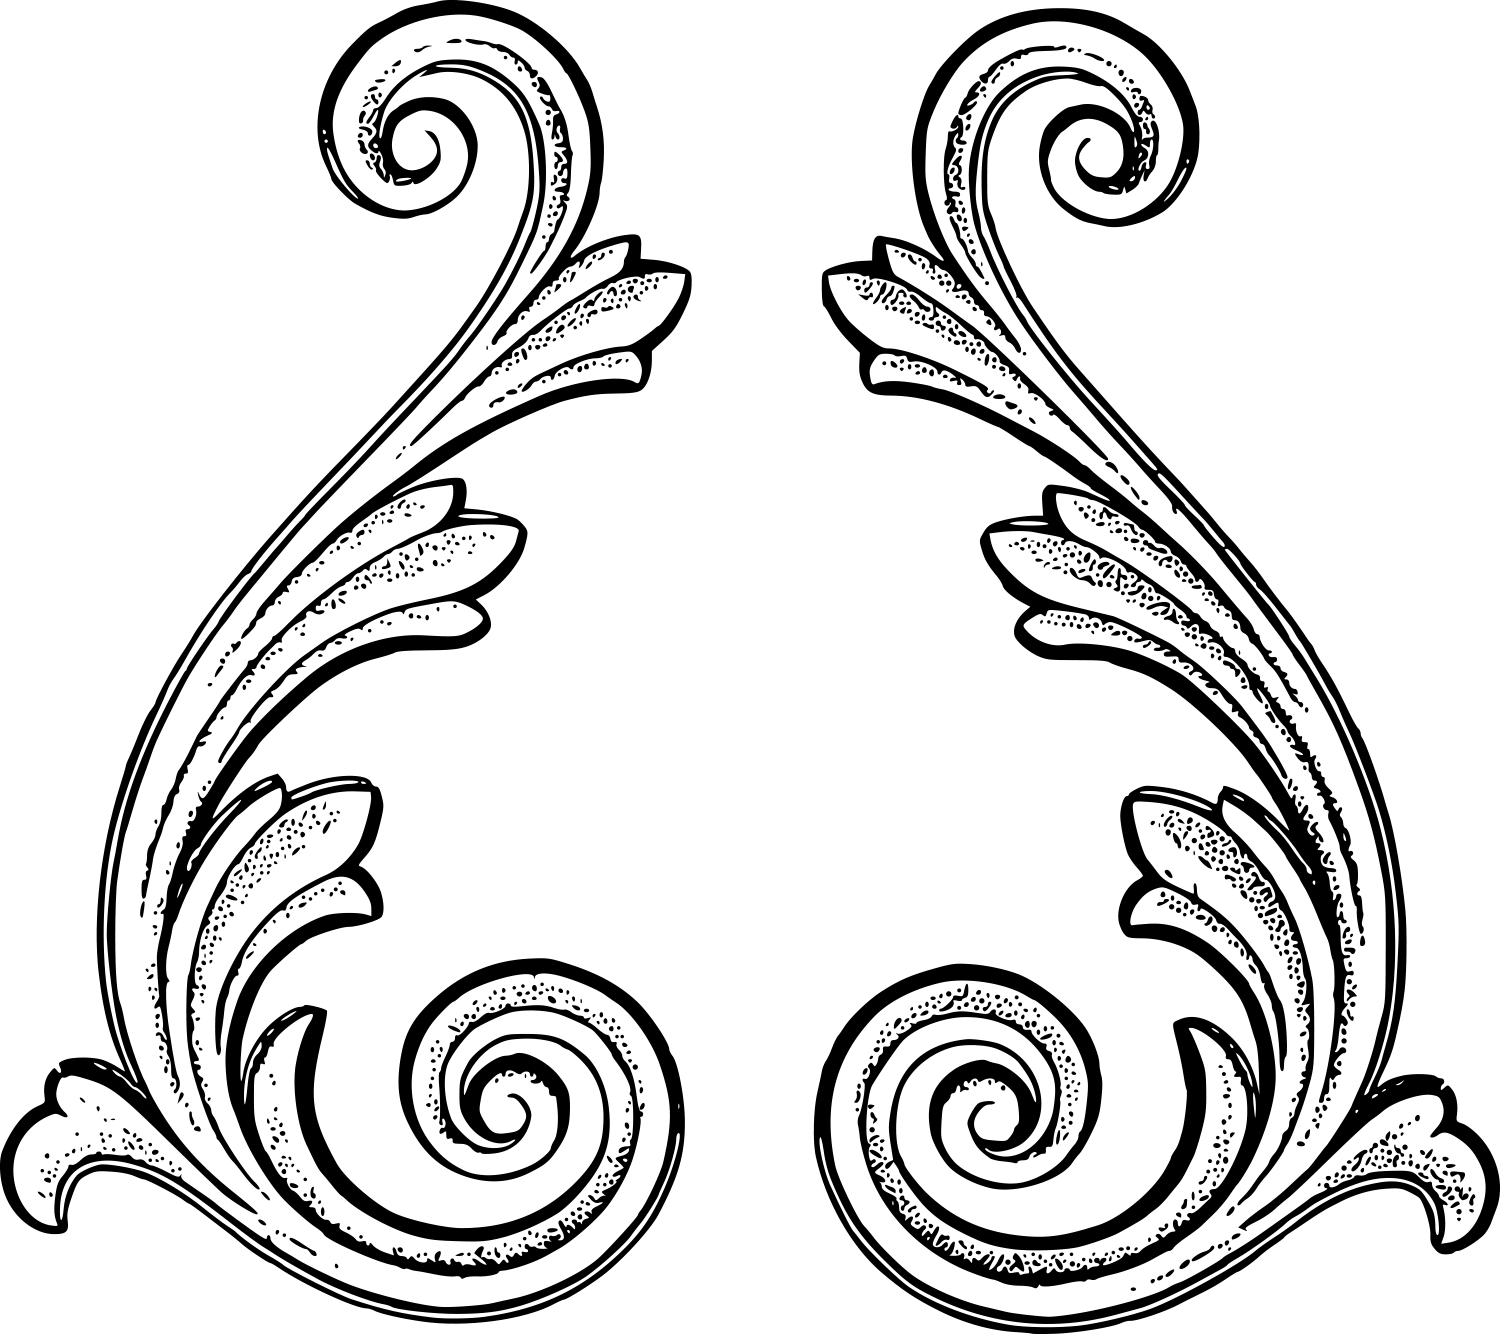 Free flourish png. Royalty vintage art